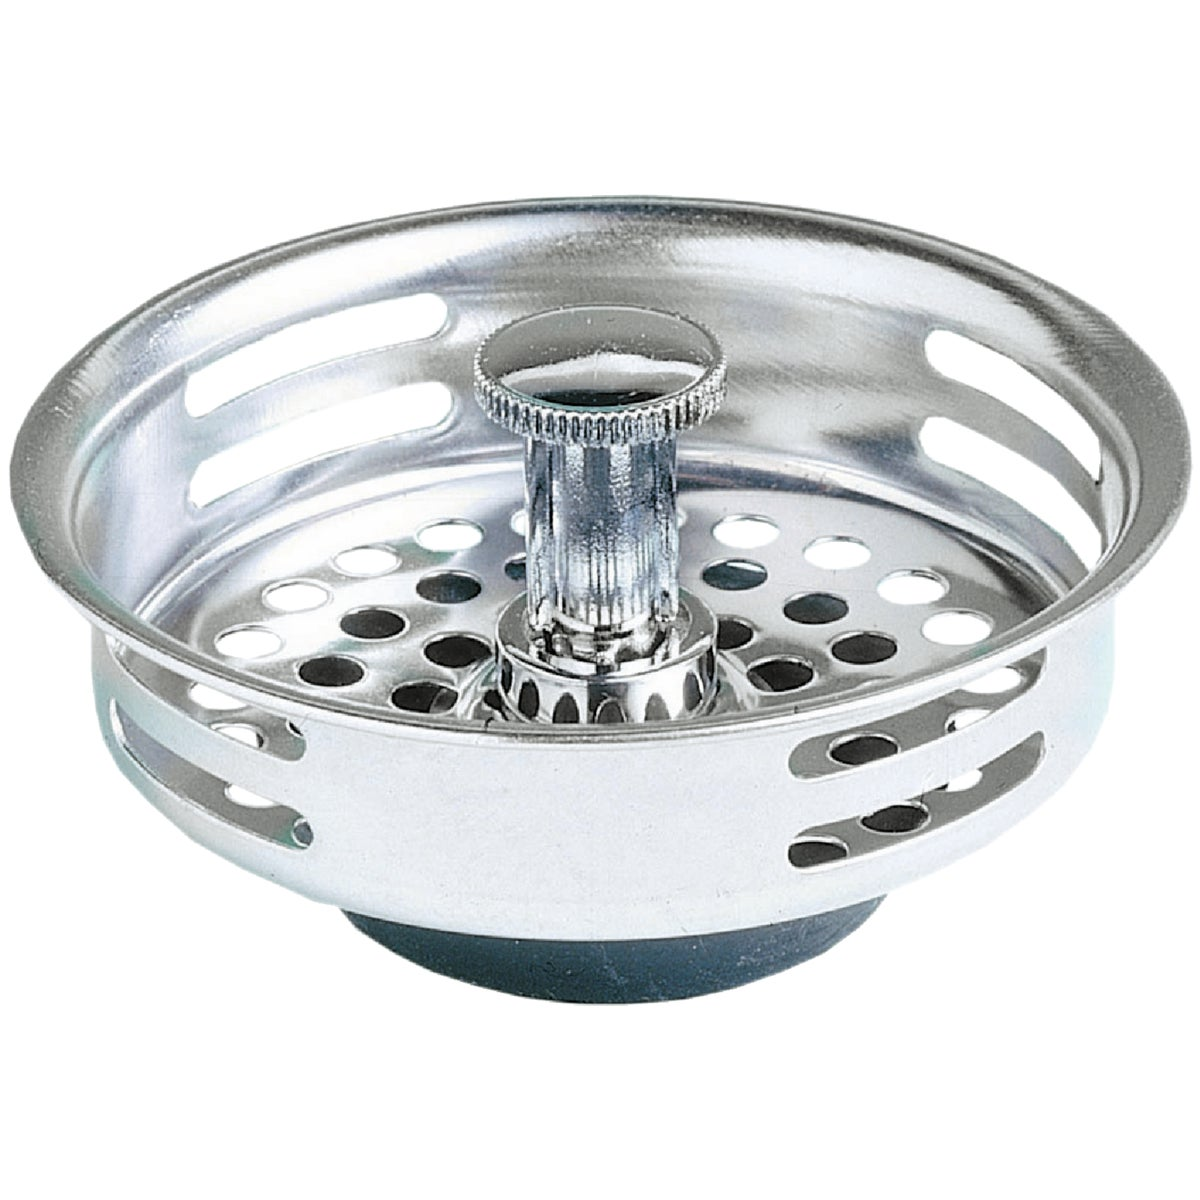 BASKET STRAINER - 415704 by Do it Best